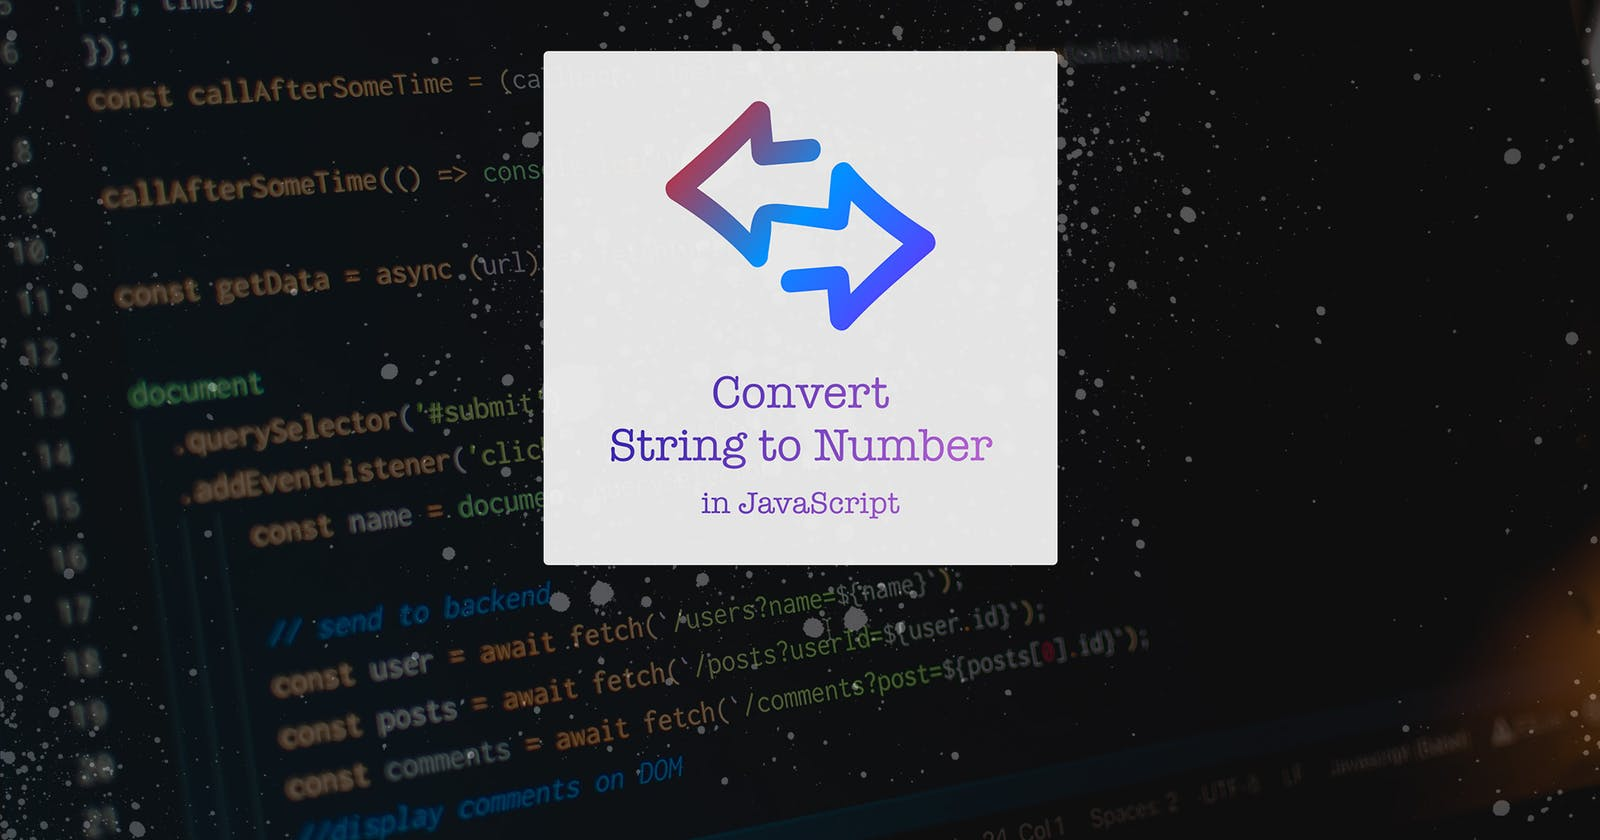 Ways to convert String to Number in JS